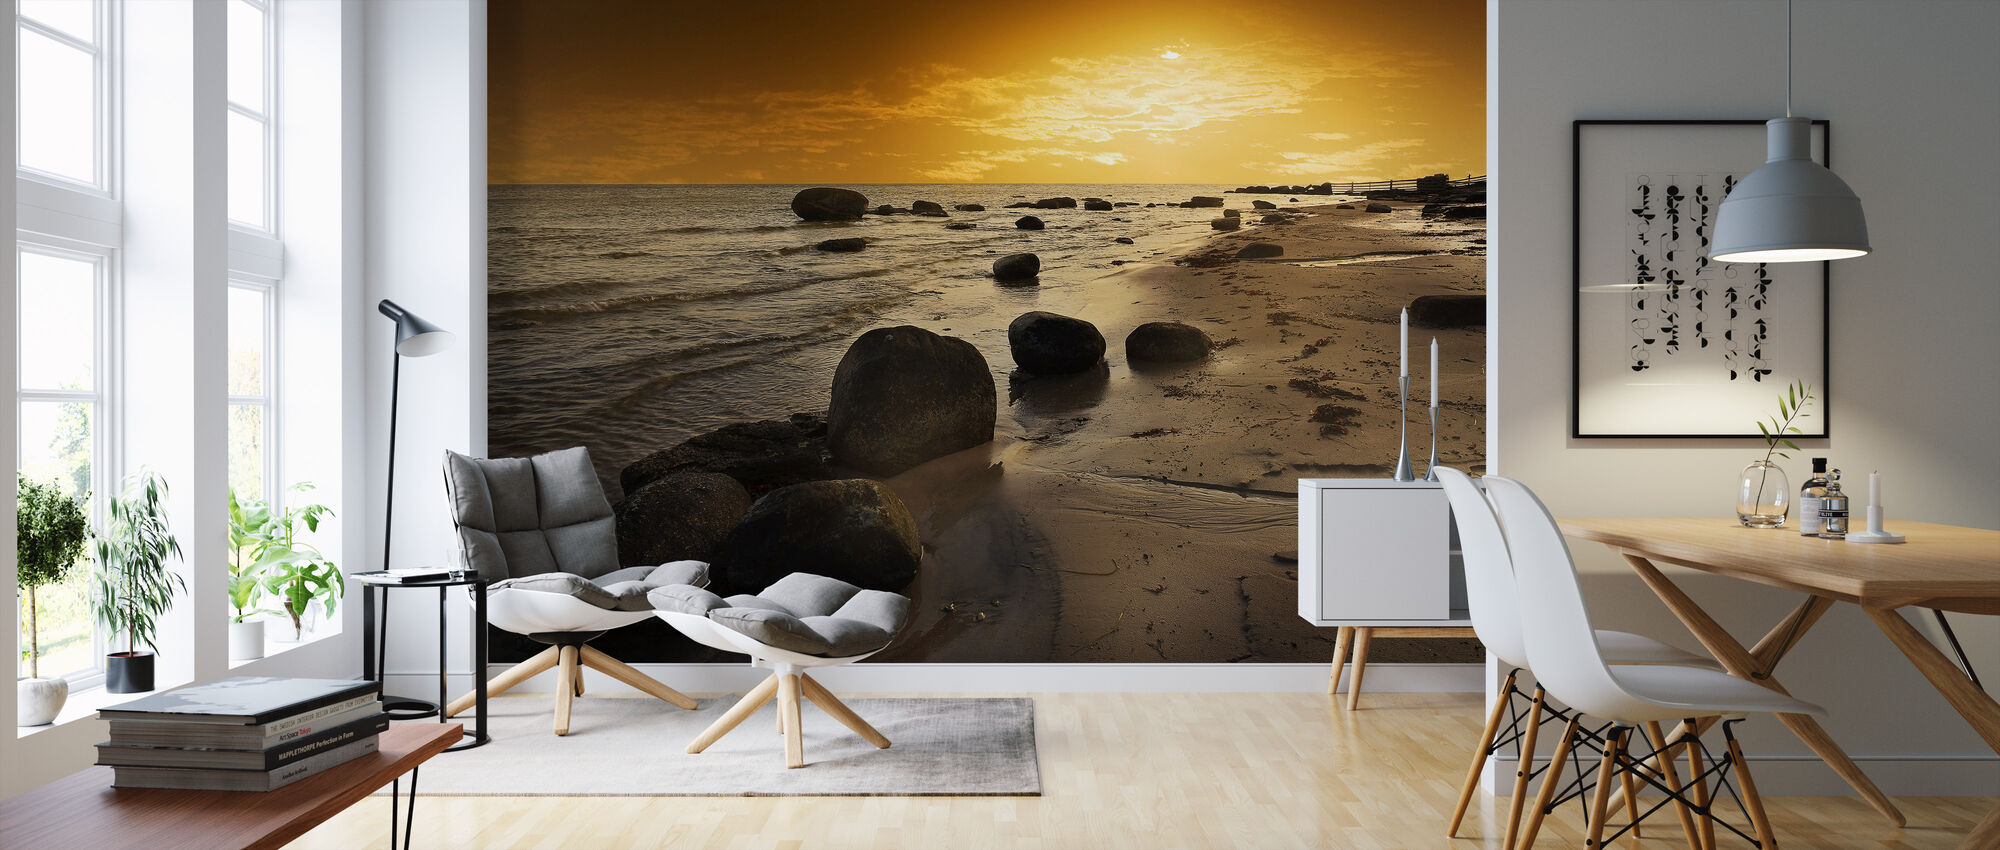 Golden Beach Sunset - Wallpaper - Living Room